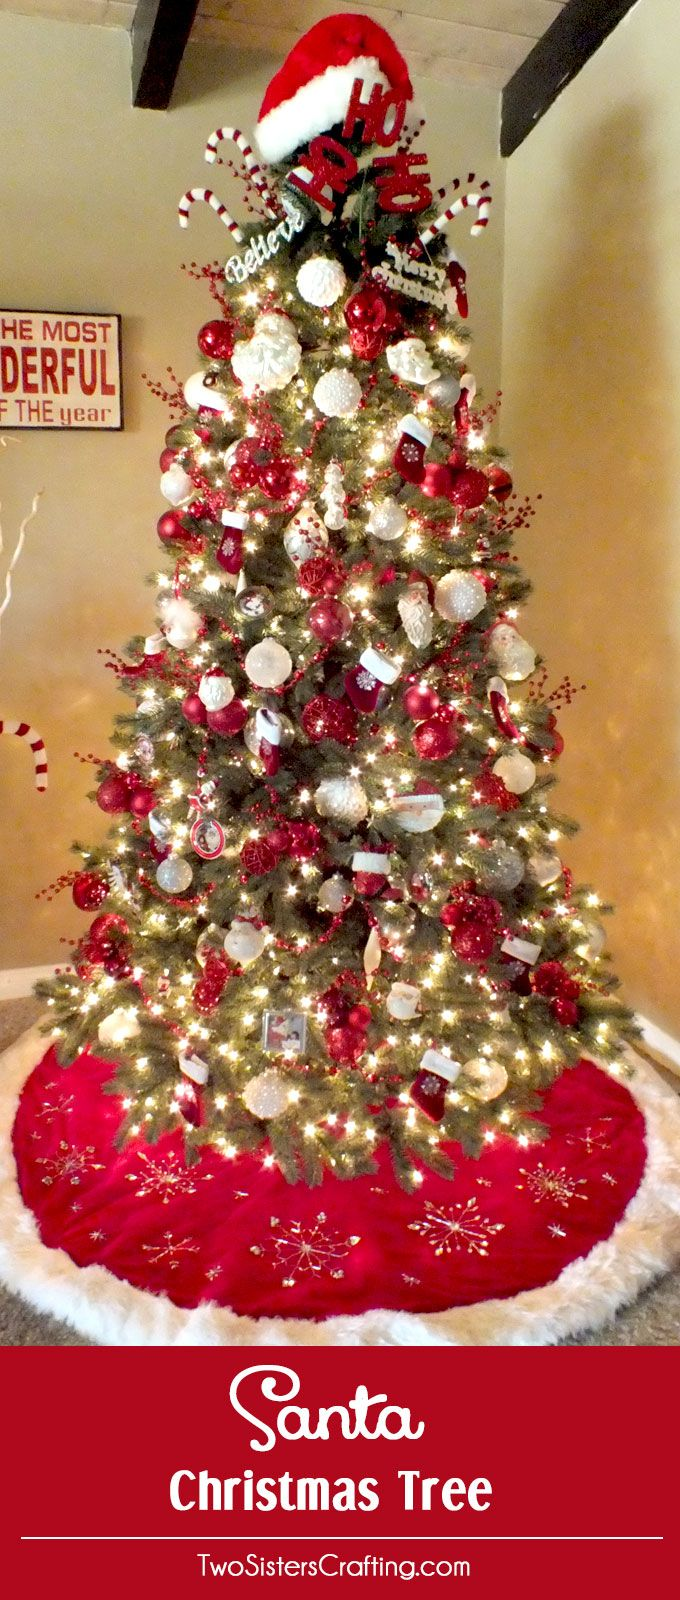 1000+ ideas about Christmas Trees on Pinterest | Christmas ...